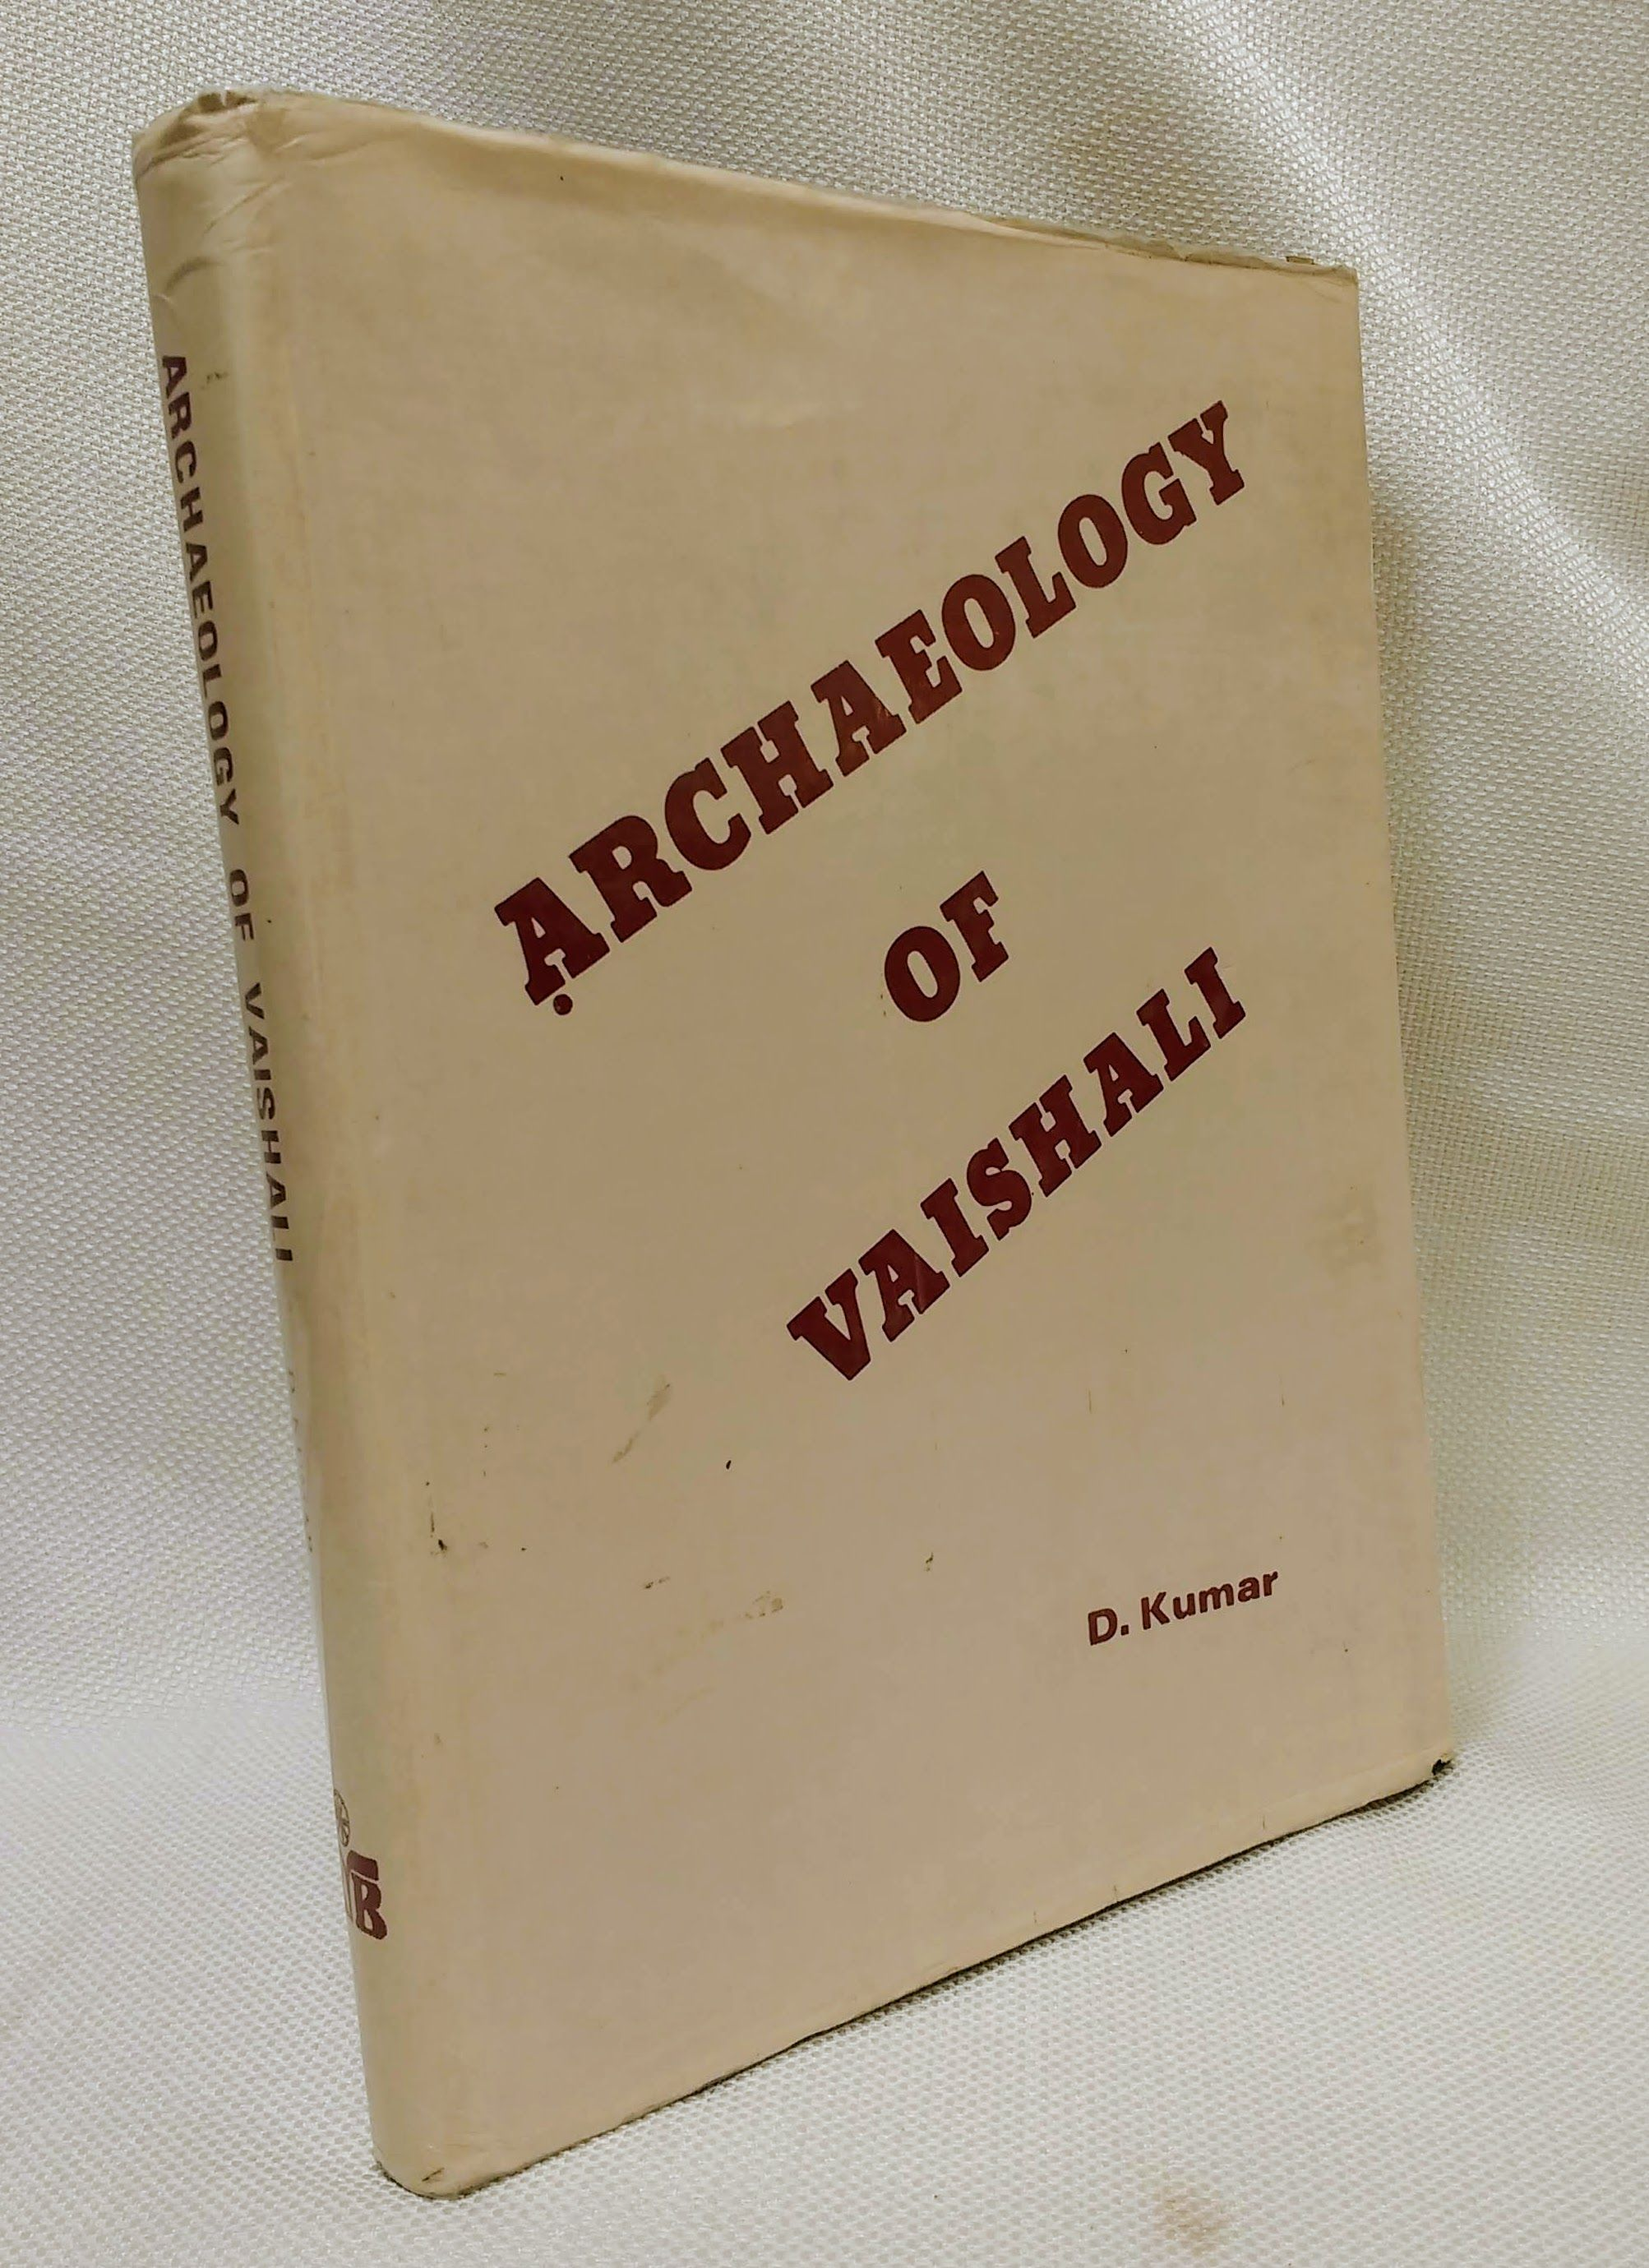 Archaeology of Vaishali (The Heritage of Ancient India, No VII), Kumar, Dilip